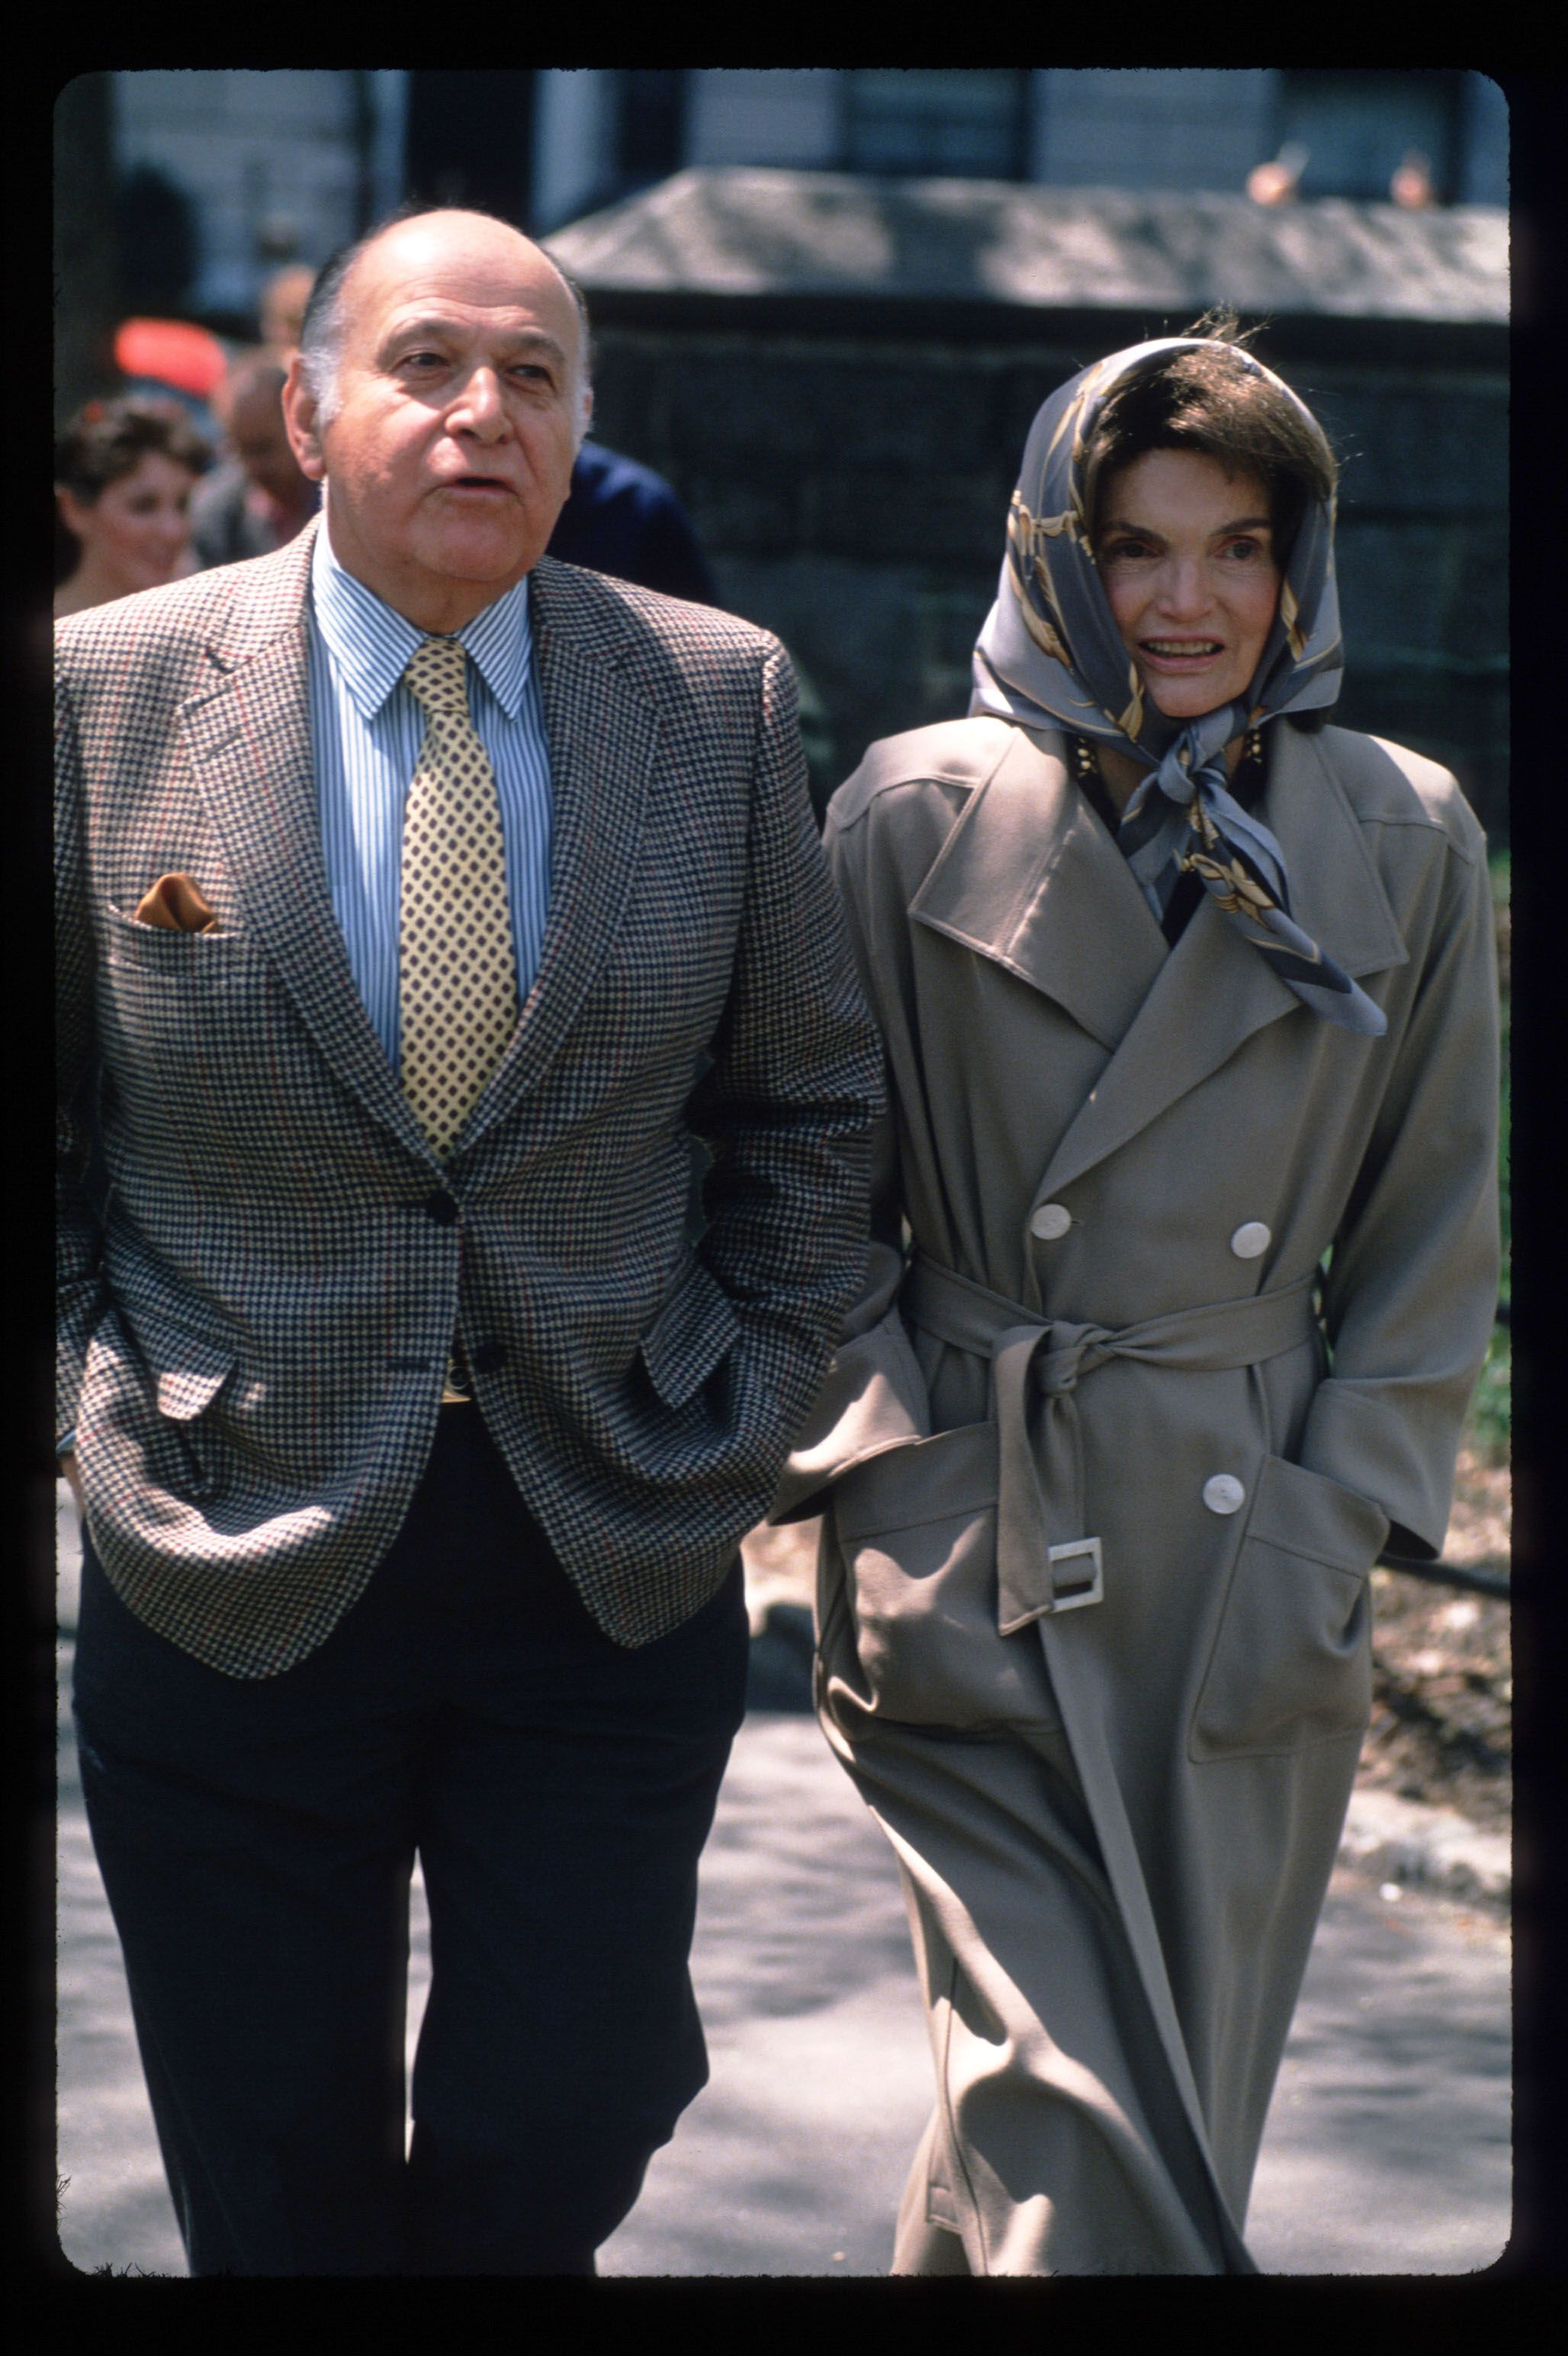 Jacqueline Kennedy Onassis takes her first walk with Maurice Tempelsman in Central Park after leaving the hospital on April 24, 1994, in New York City | Photo: Steve Allen/Liaison/Getty Images